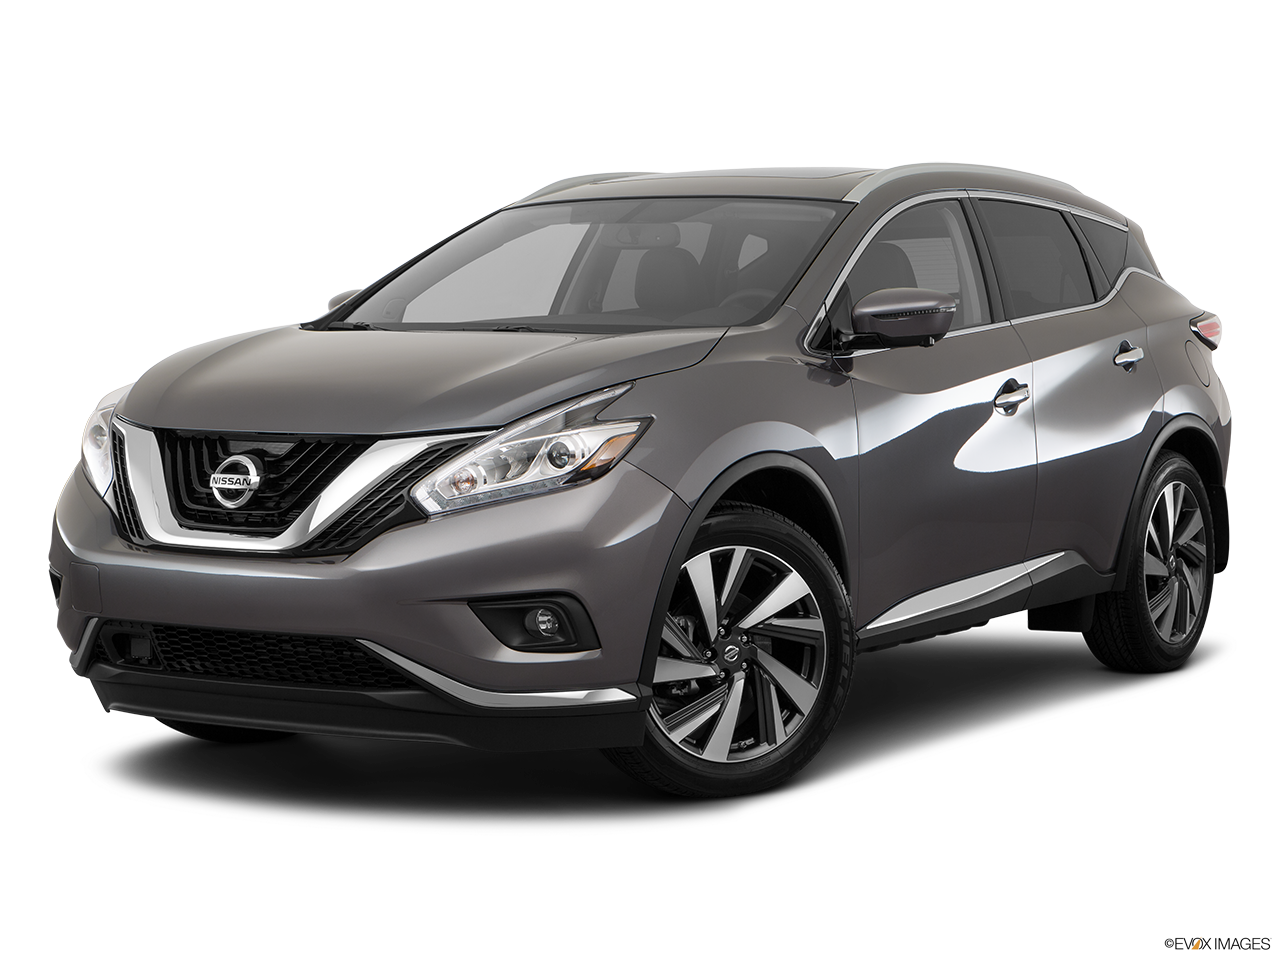 Test Drive A 2017 Nissan Murano® at Palm Springs Nissan